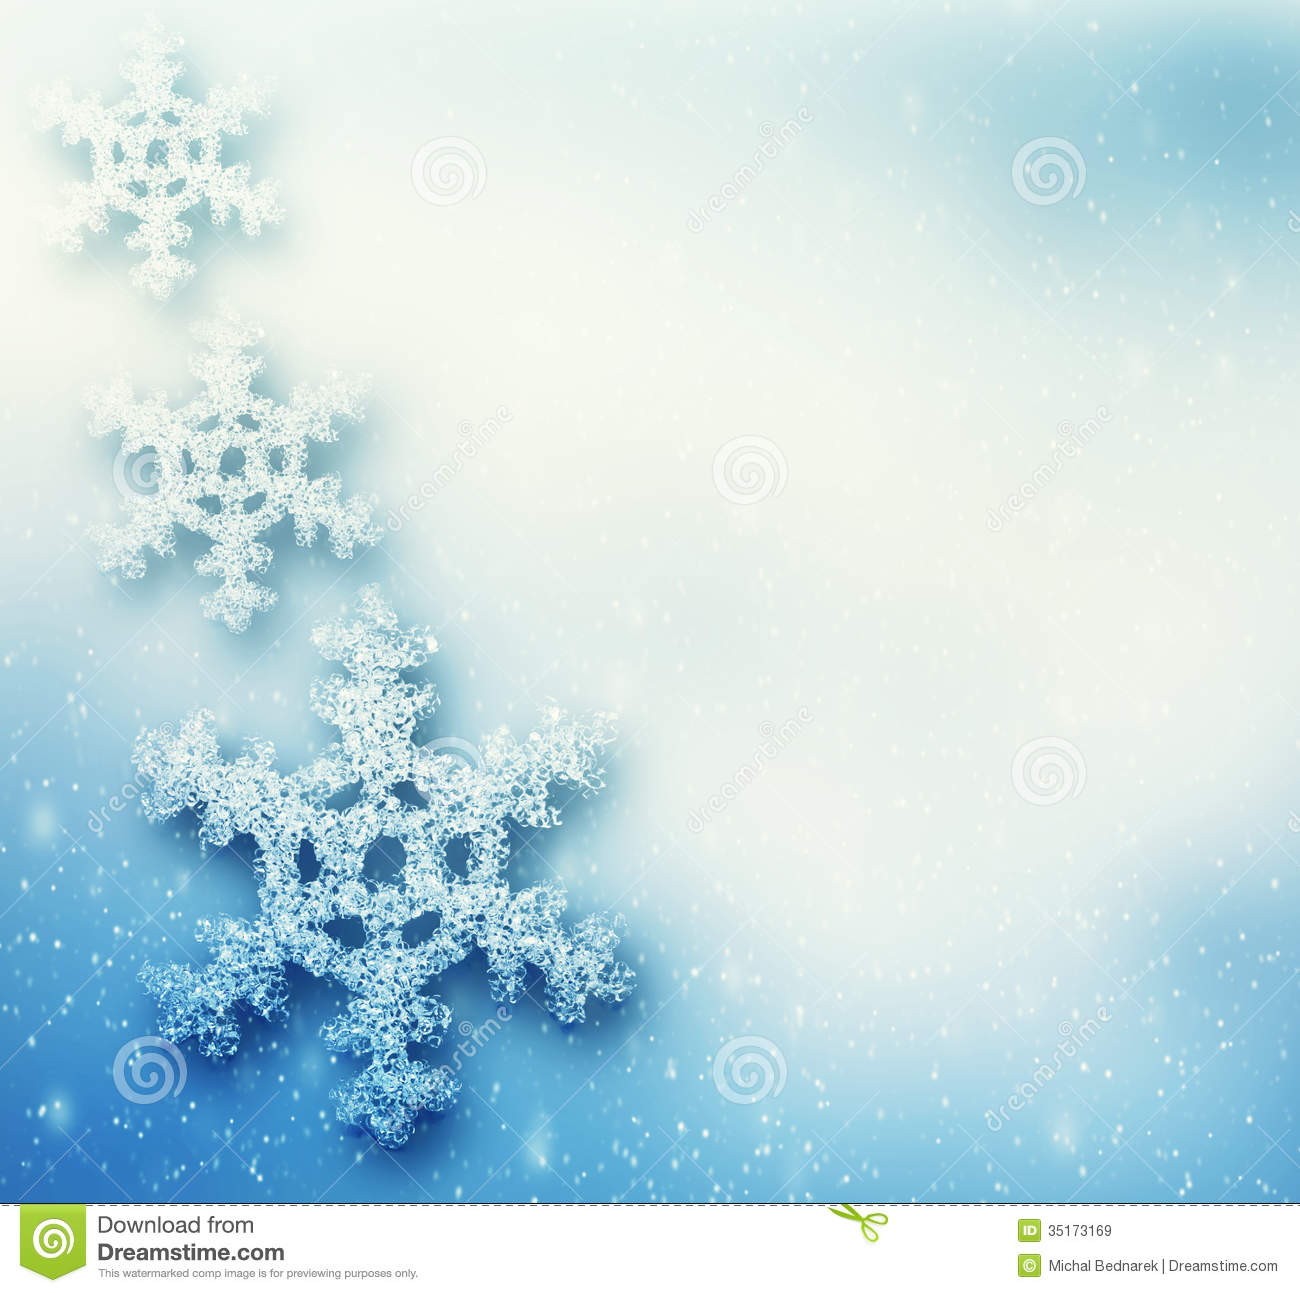 Background with big snowflakes snow storm frost glittering lights